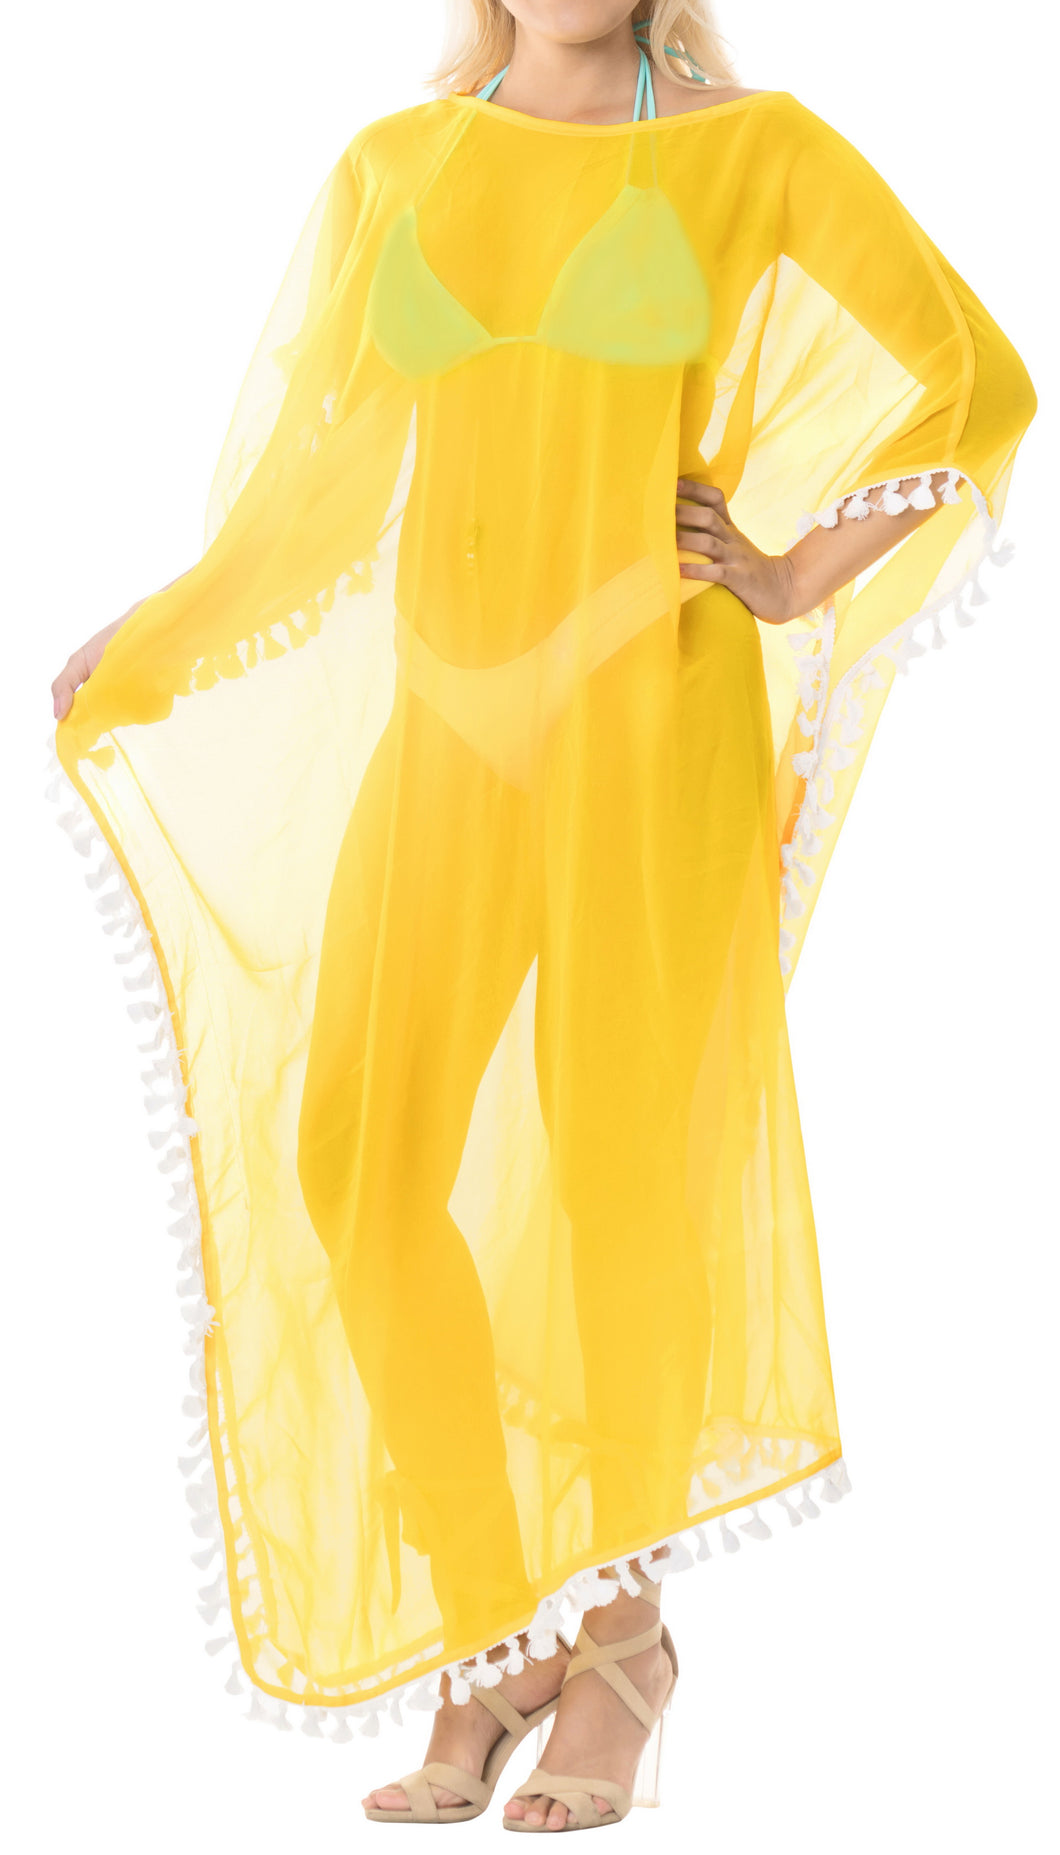 la-leela-chiffon-solid-long-caftan-vacation-top-yellow_4110-osfm-14-18w-l-2x-yellow_b522